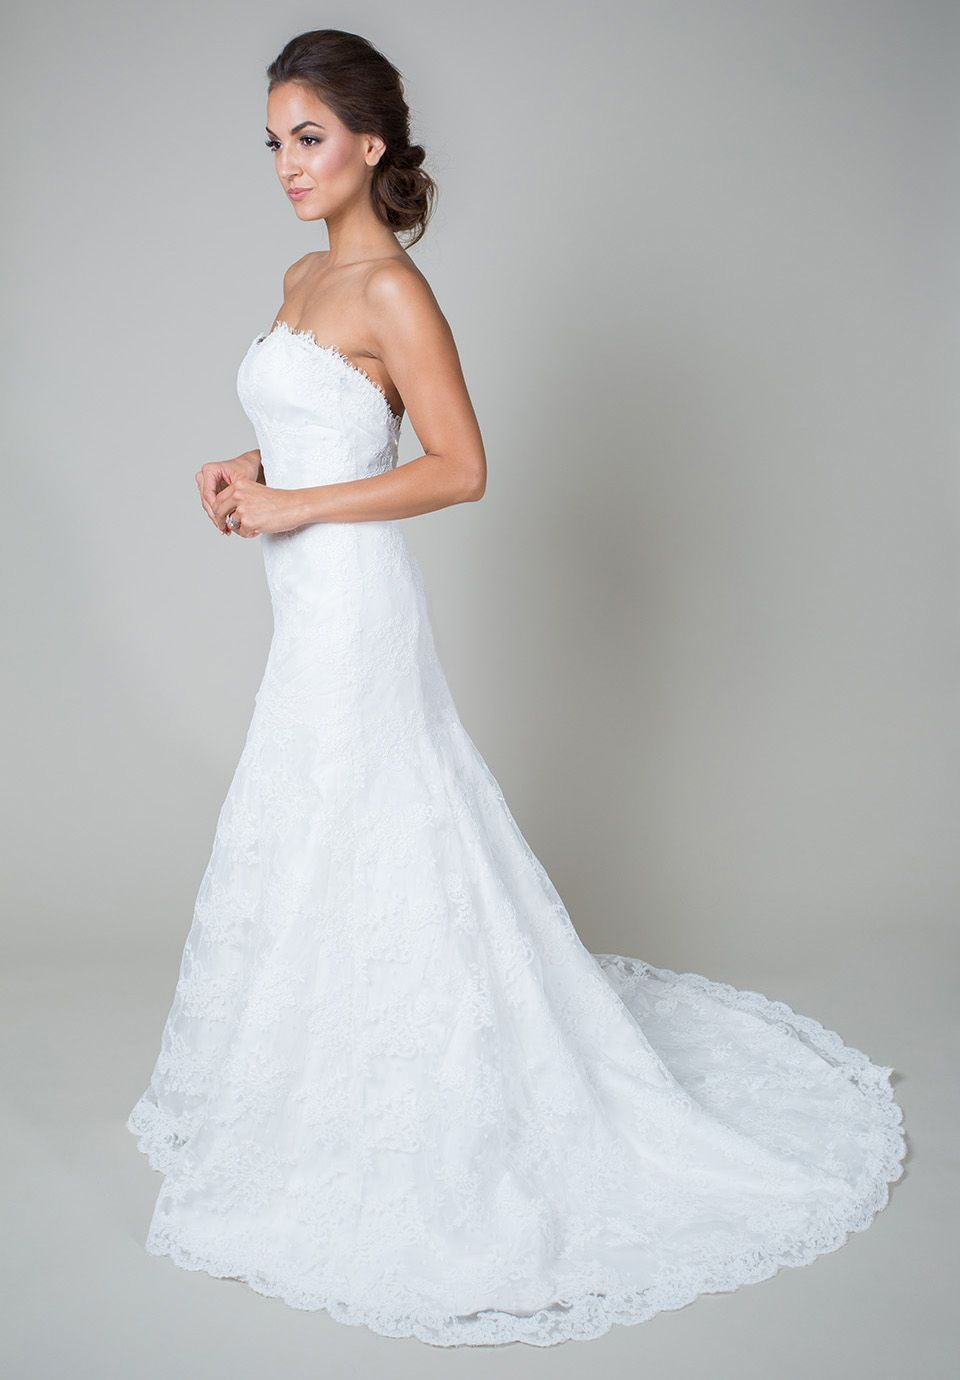 Riley Grace | Heidi Elnora Classic and traditional, this fit-to-flare gown features a sweetheart neckline, corded swiss dot lace, a low back, and a chapel train. http://heidielnora.com/dress/riley-grace/